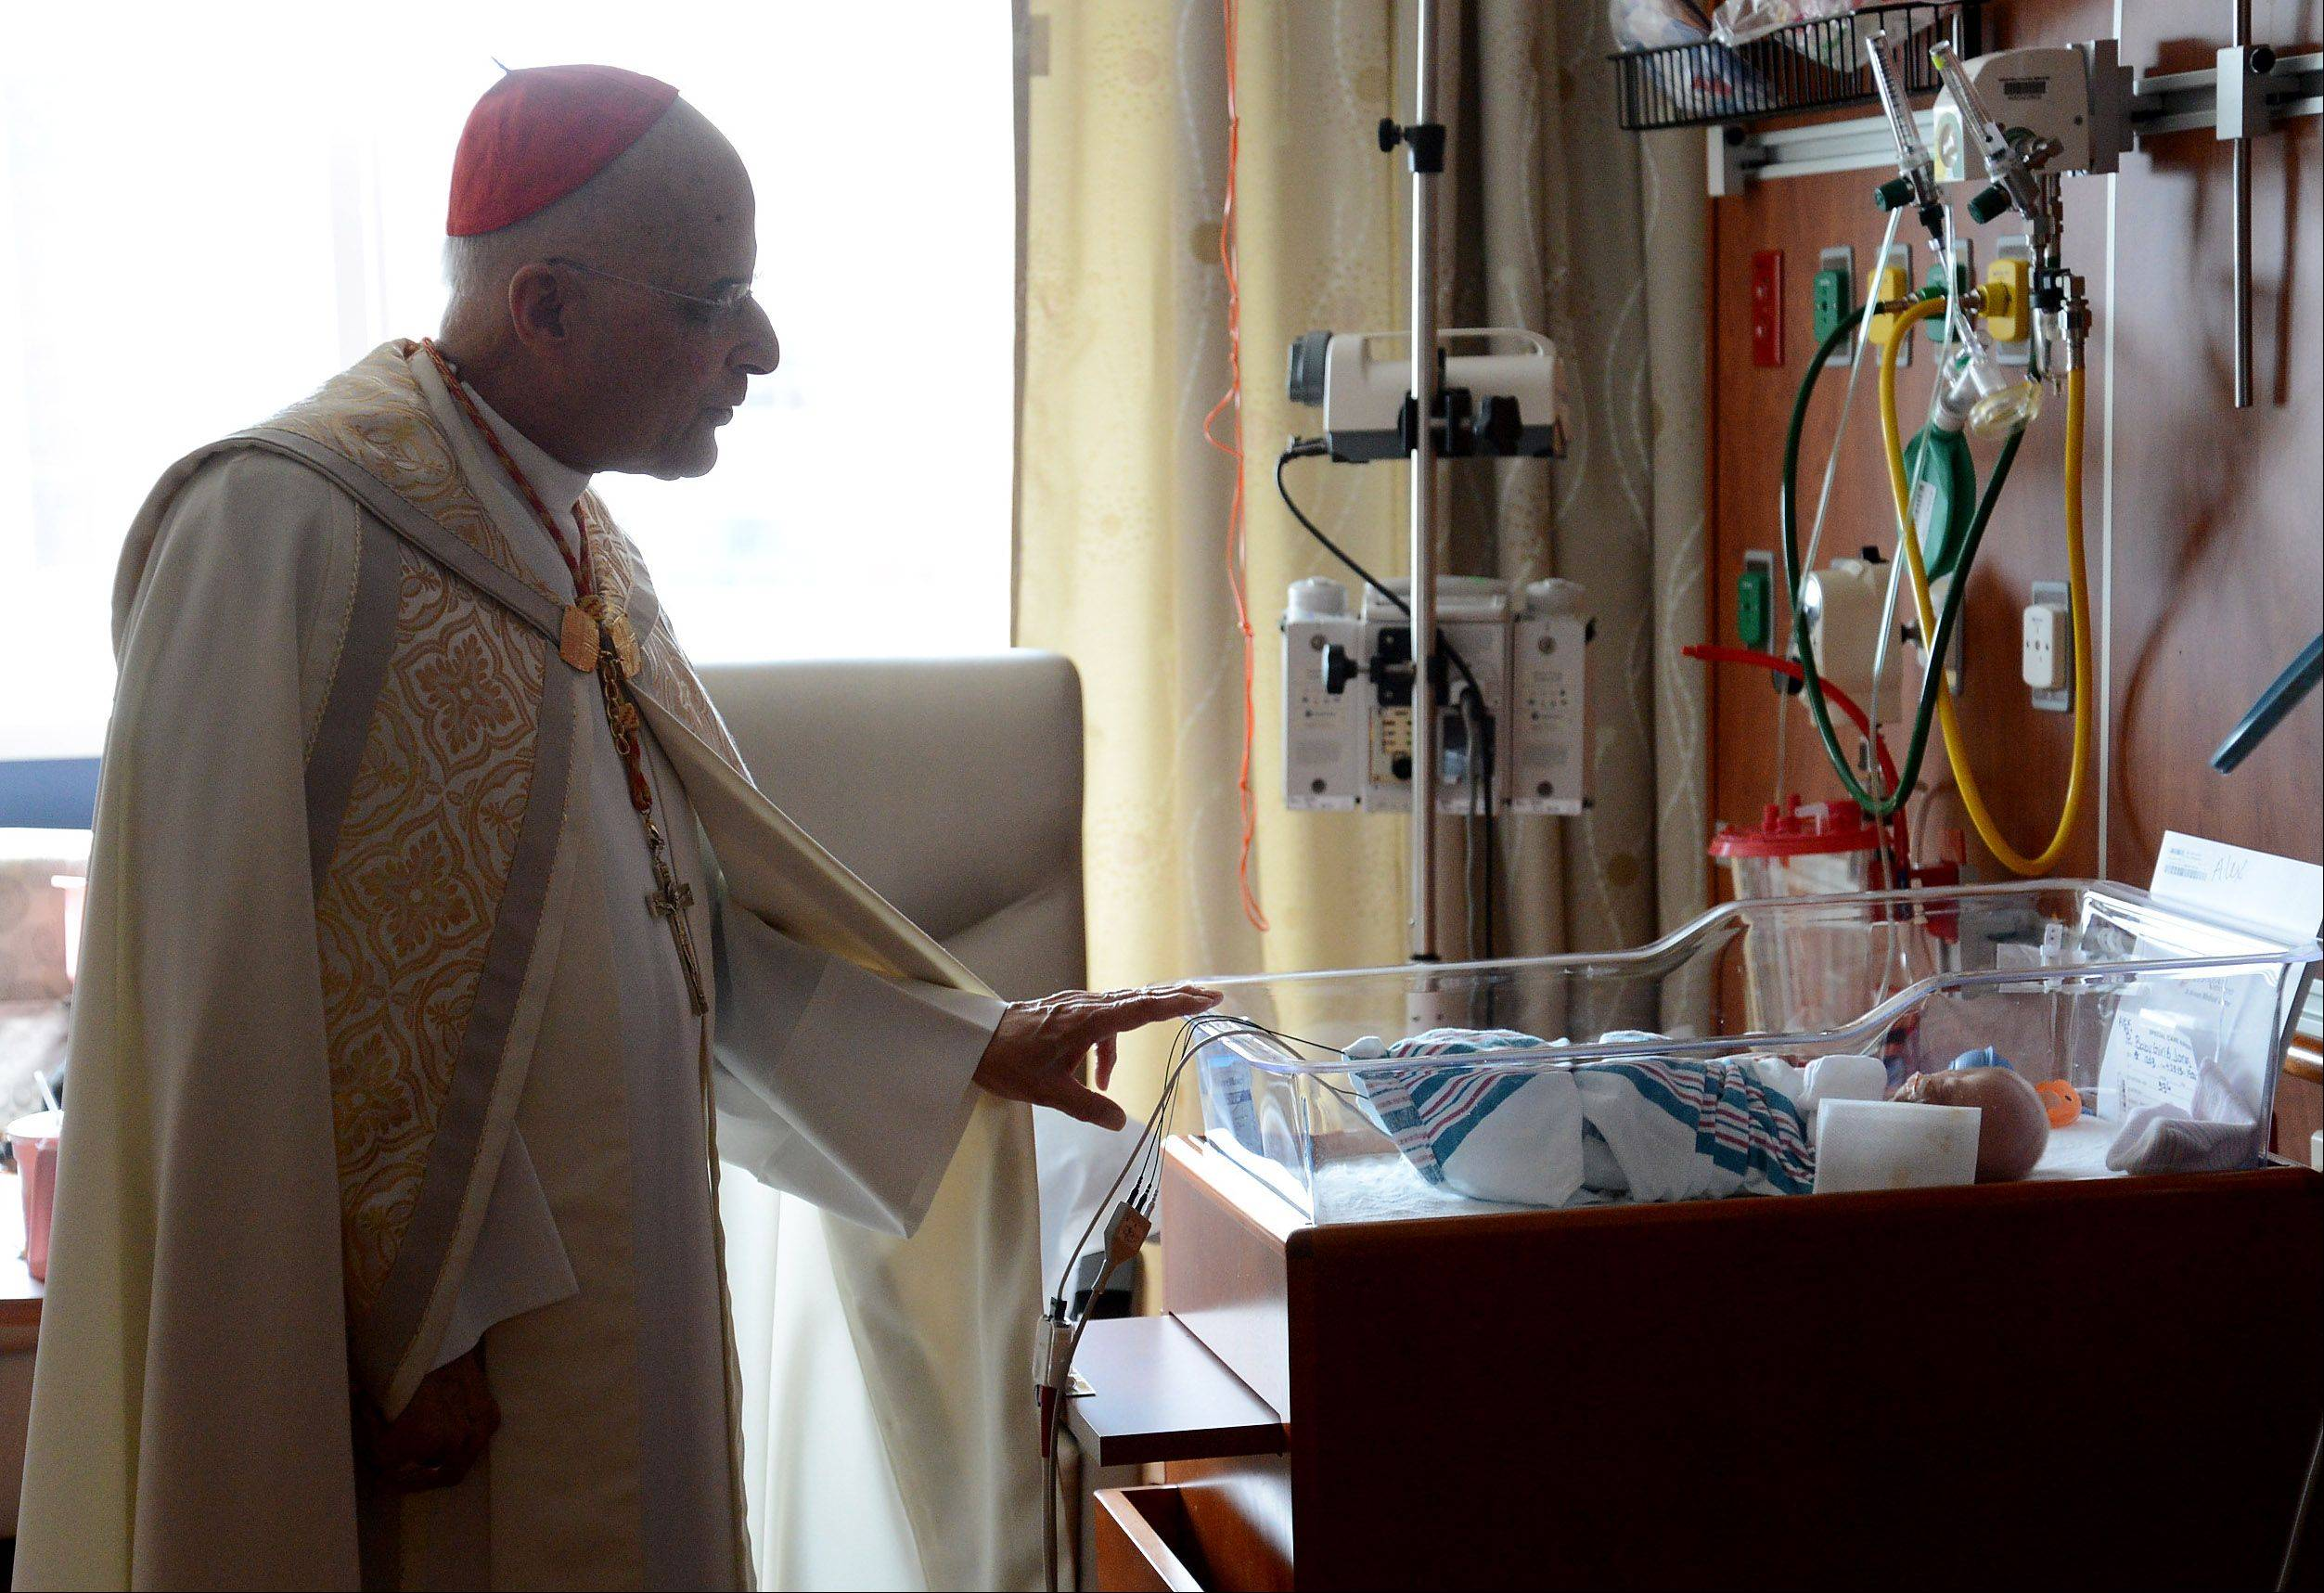 Cardinal George blesses Alexandra Jones, who was born prematurely, at the new Alexian Brothers Women and Children's Hospital in Hoffman Estates.